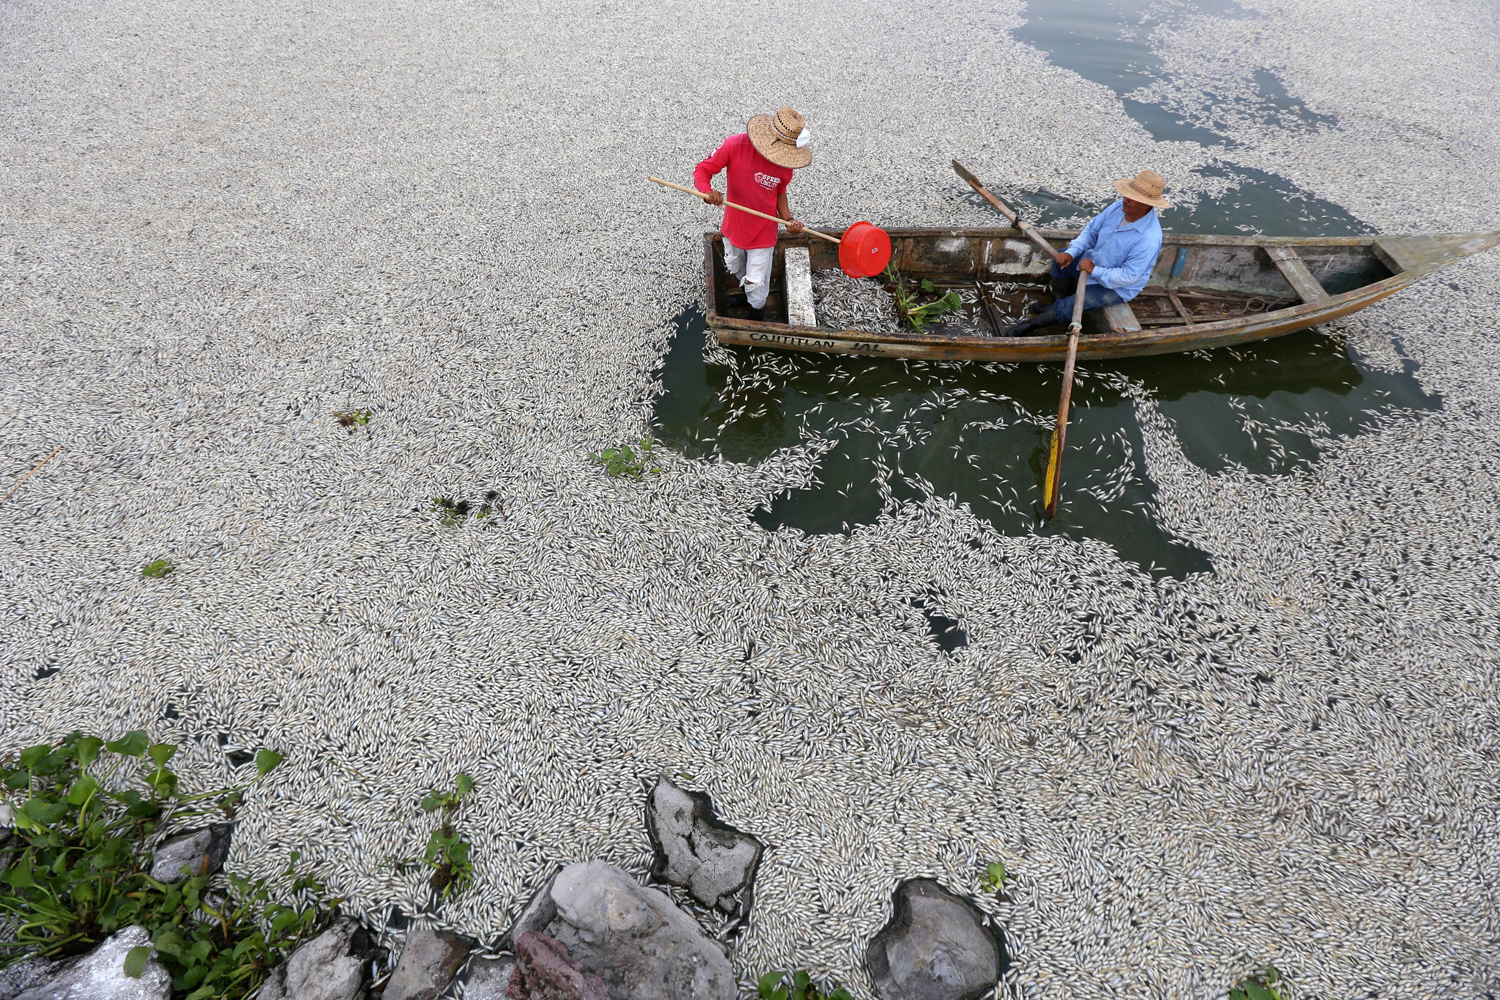 Aug. 31, 2014. Fishermen, firefighters, and Agriculture, Cattle, Rural Development, Fish and Food Secretary personnel collaborate in the cleaning of dead fish in the Cajititlan lake, Tlajomulco town, Mexican state of Jalisco. Close to 50 tons of fish have died over the last six days from unknown causes.